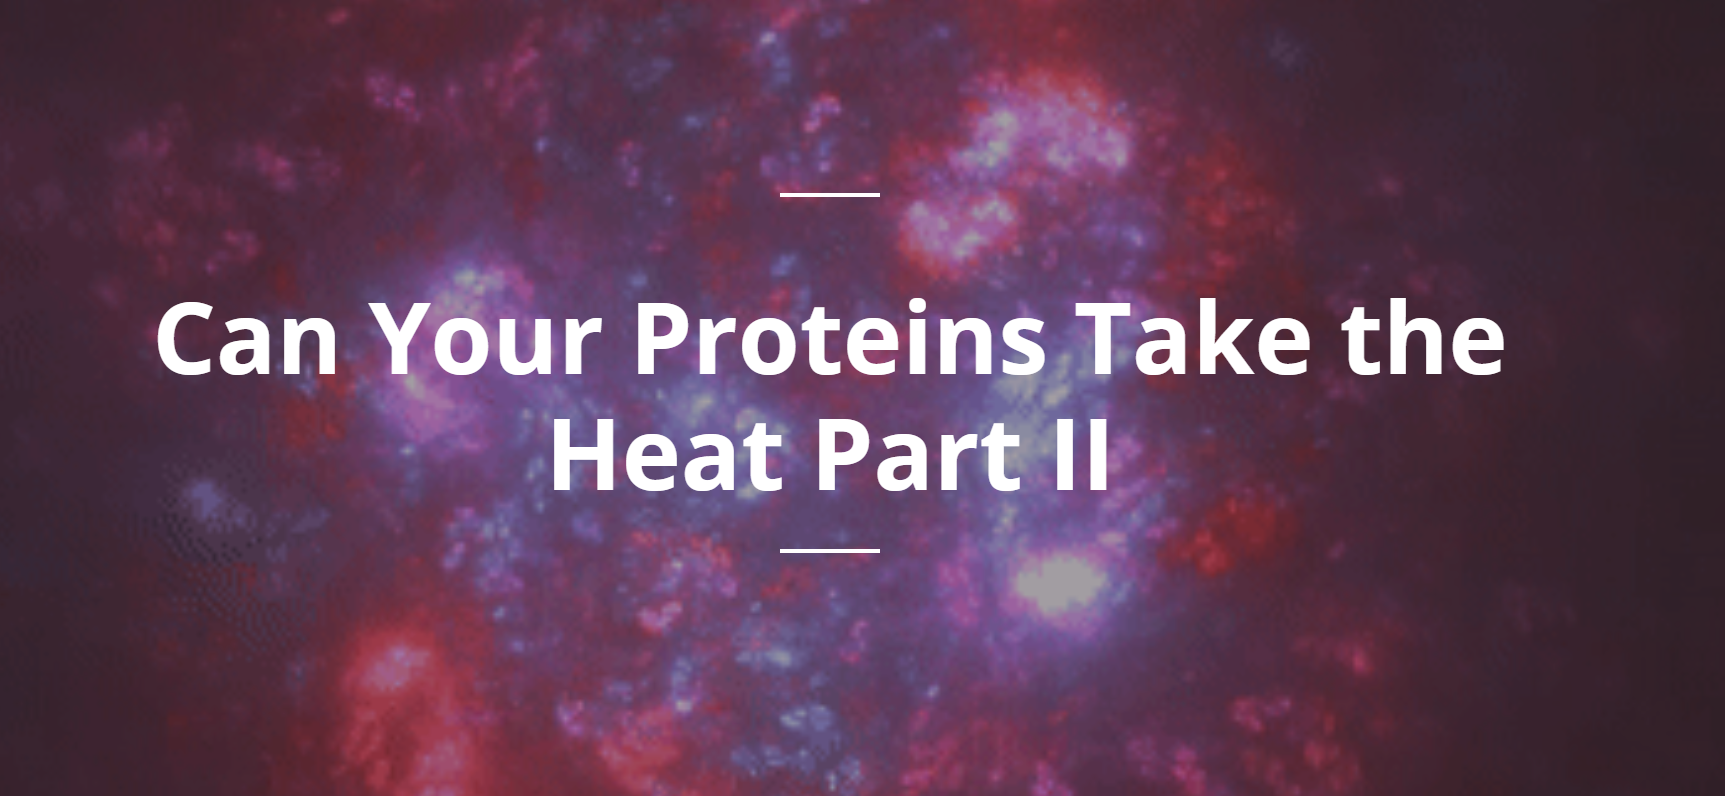 Proteins Take Heat CTA